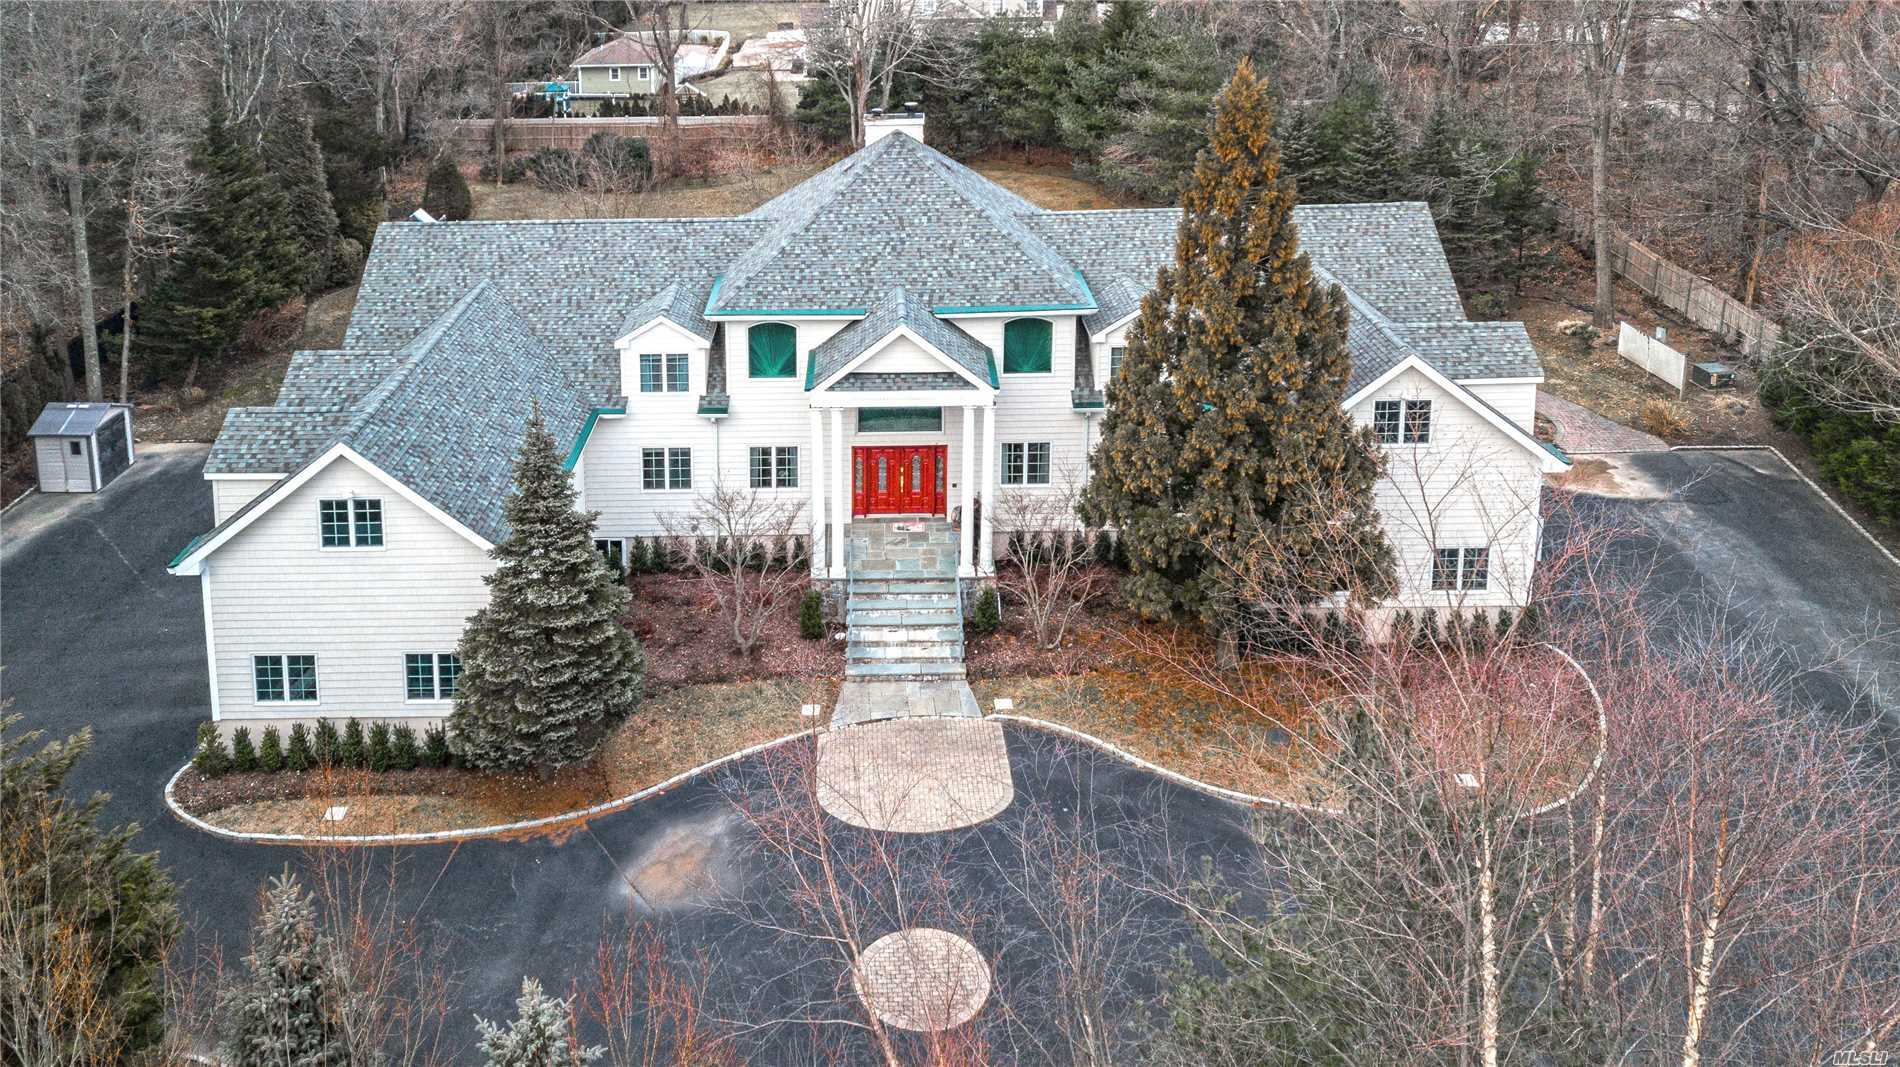 Elegant Estate Setting With Gated Long Driveway. Magnificent 6500+ Sq Ft Colonial Set Behind A Conservation Area On 1.79 Acres, Architecturally Dramatic 2 Story Foyer With Sweeping Staircase To 2nd Floor Balcony. Interior Is Accented By High Ceilings, Archways, Detailed Moldings & Intricate Woodwork. Grand Principal Rooms Are Perfect For Entertaining Including A Home Theater & Gym In Finished Basement. Enjoy Huntington Village Restaurants, Shopping, Movie Theaters & Museum. Harborfields Sd.